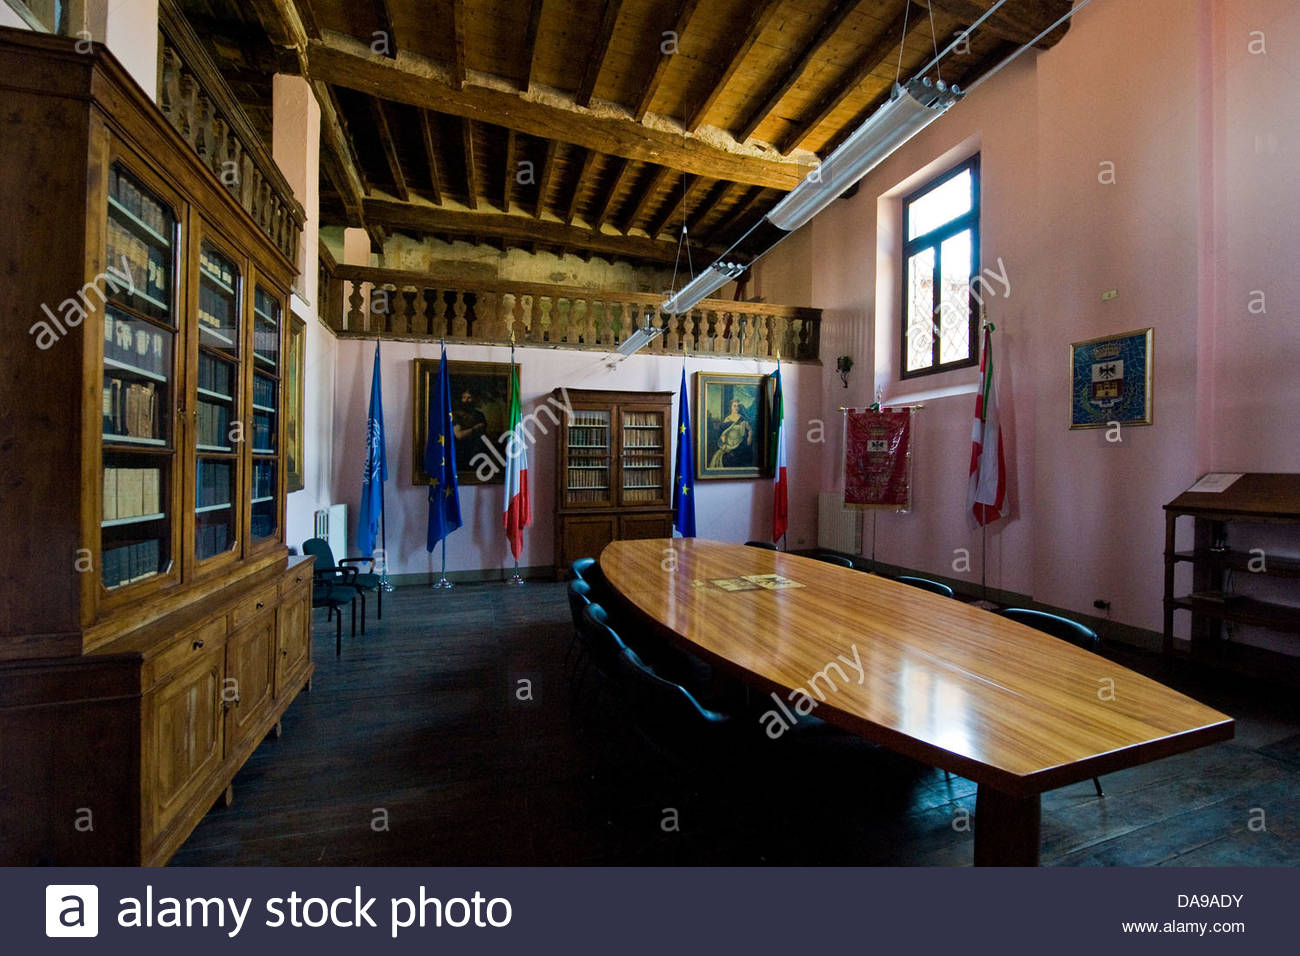 Italy,Lombardy,Soncino,town hall,council chamber - Stock Image